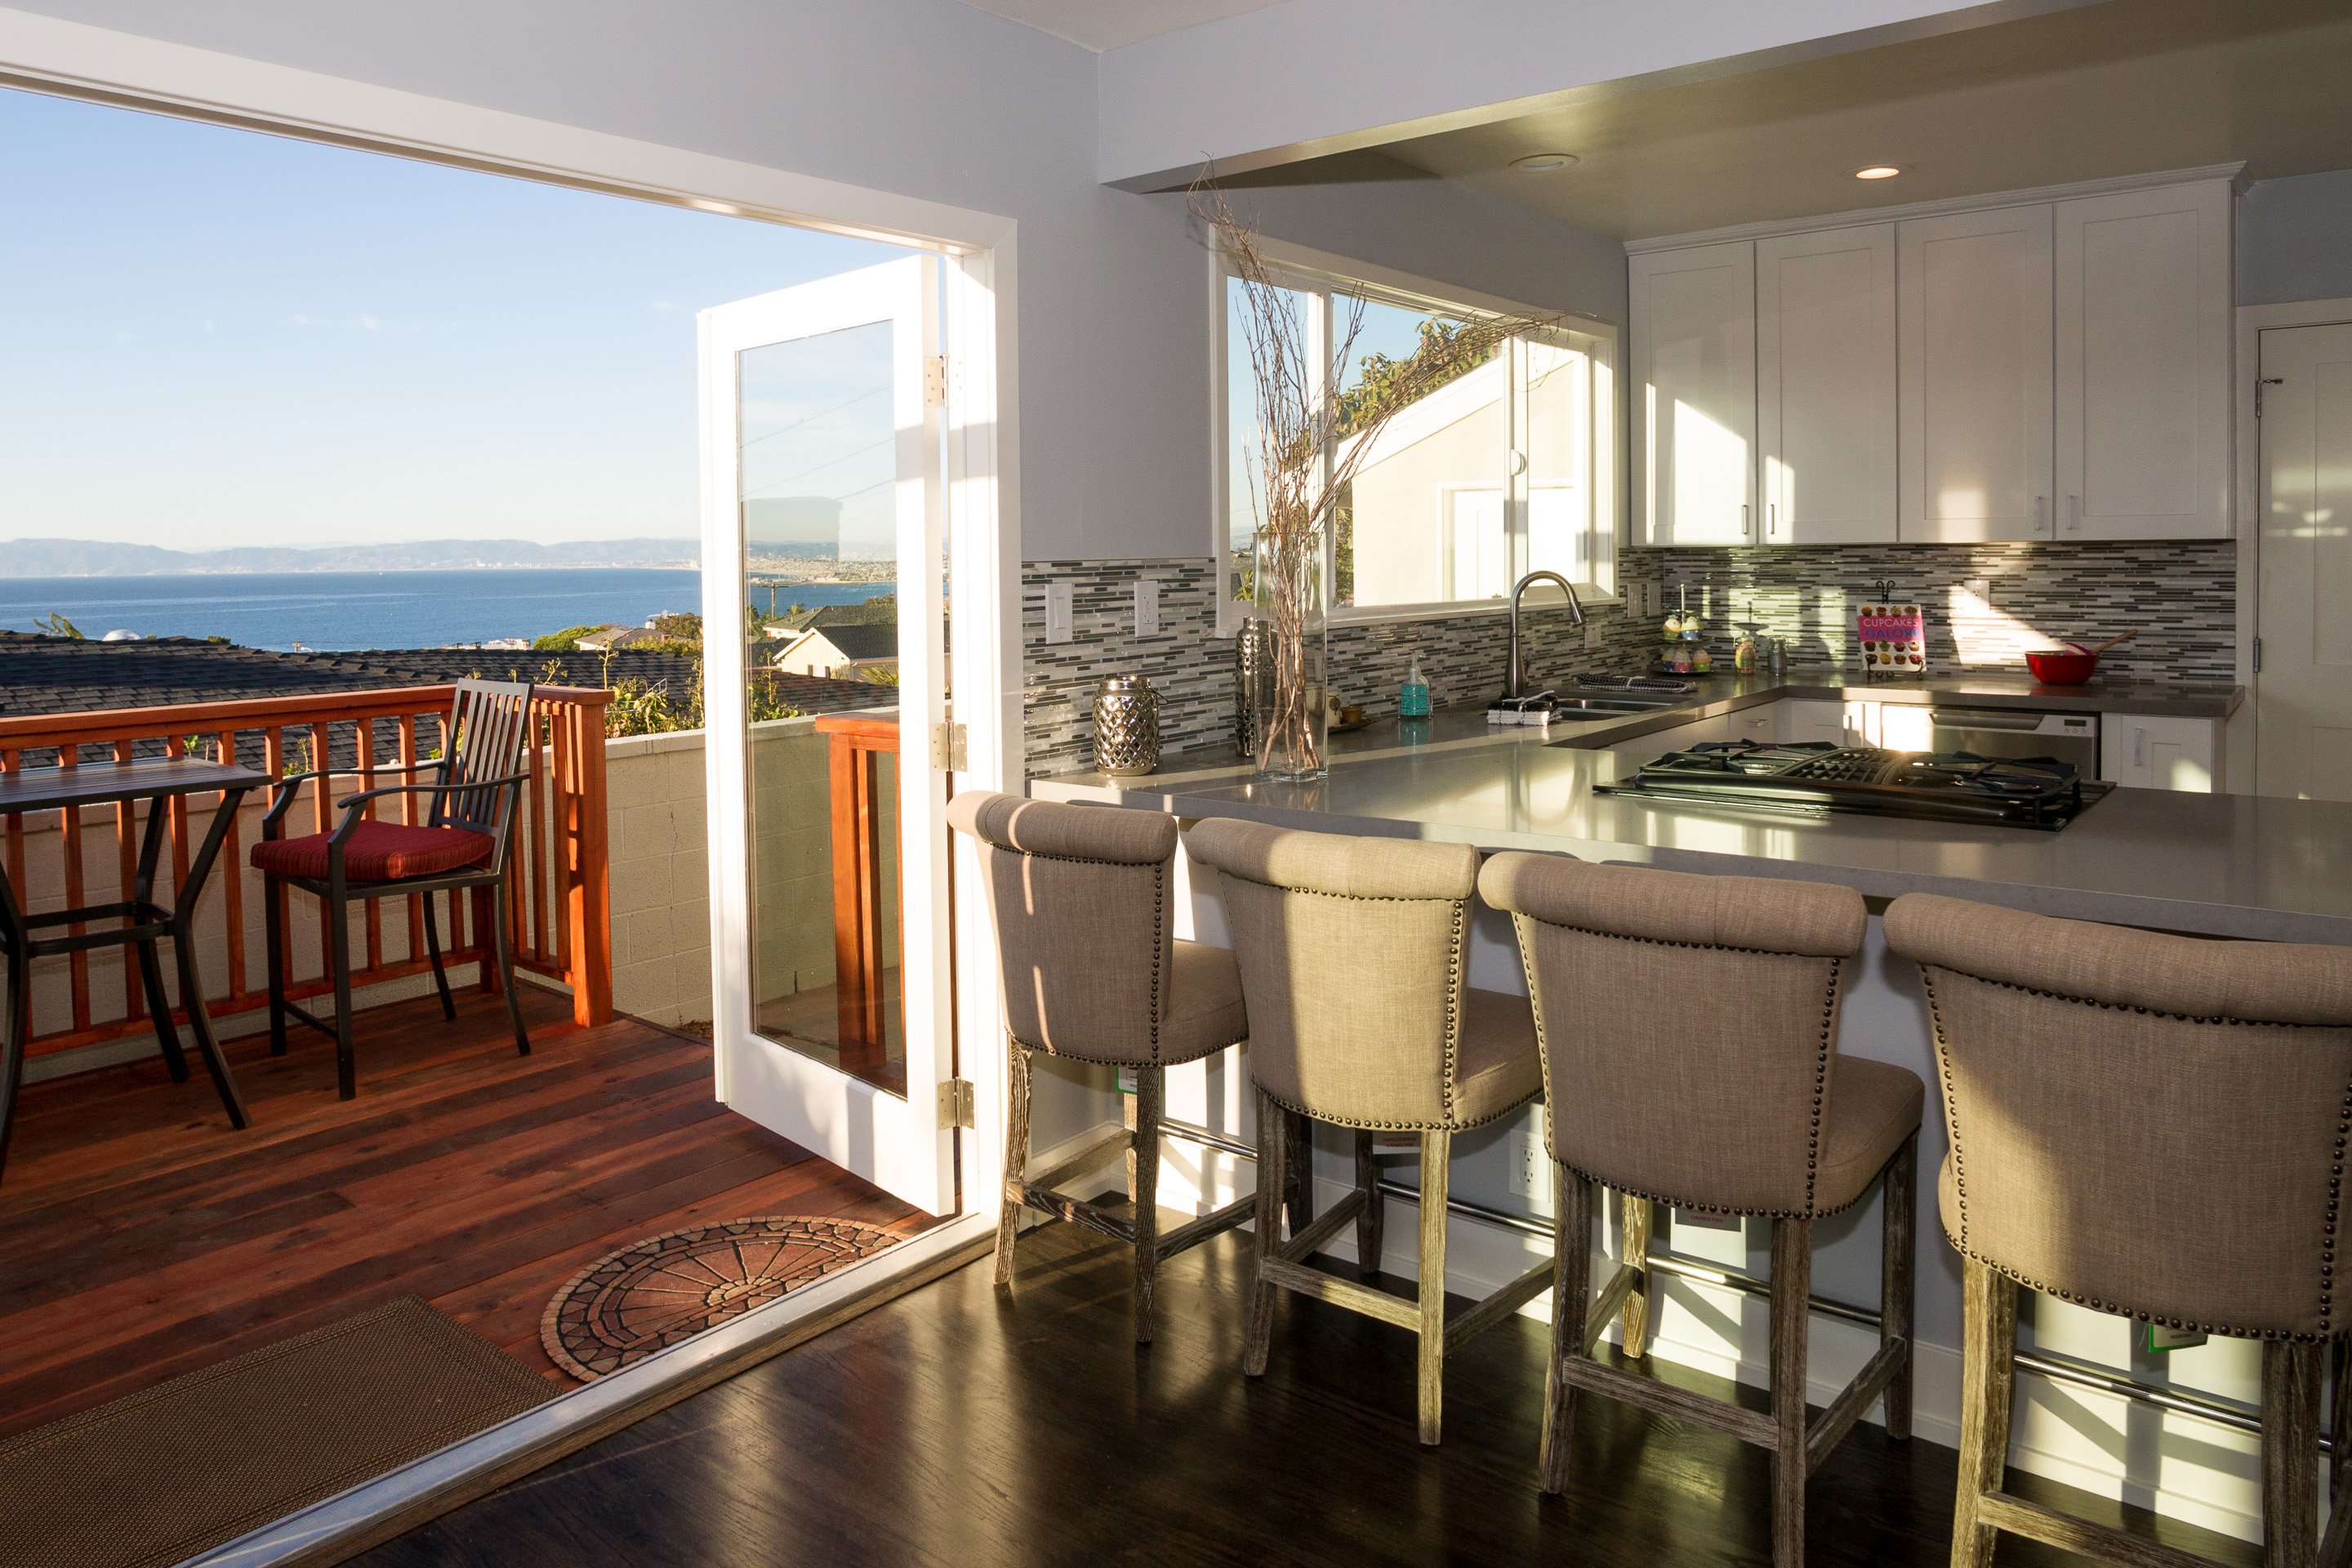 214-Via-Anita-Kitchen-with-deck-and-view